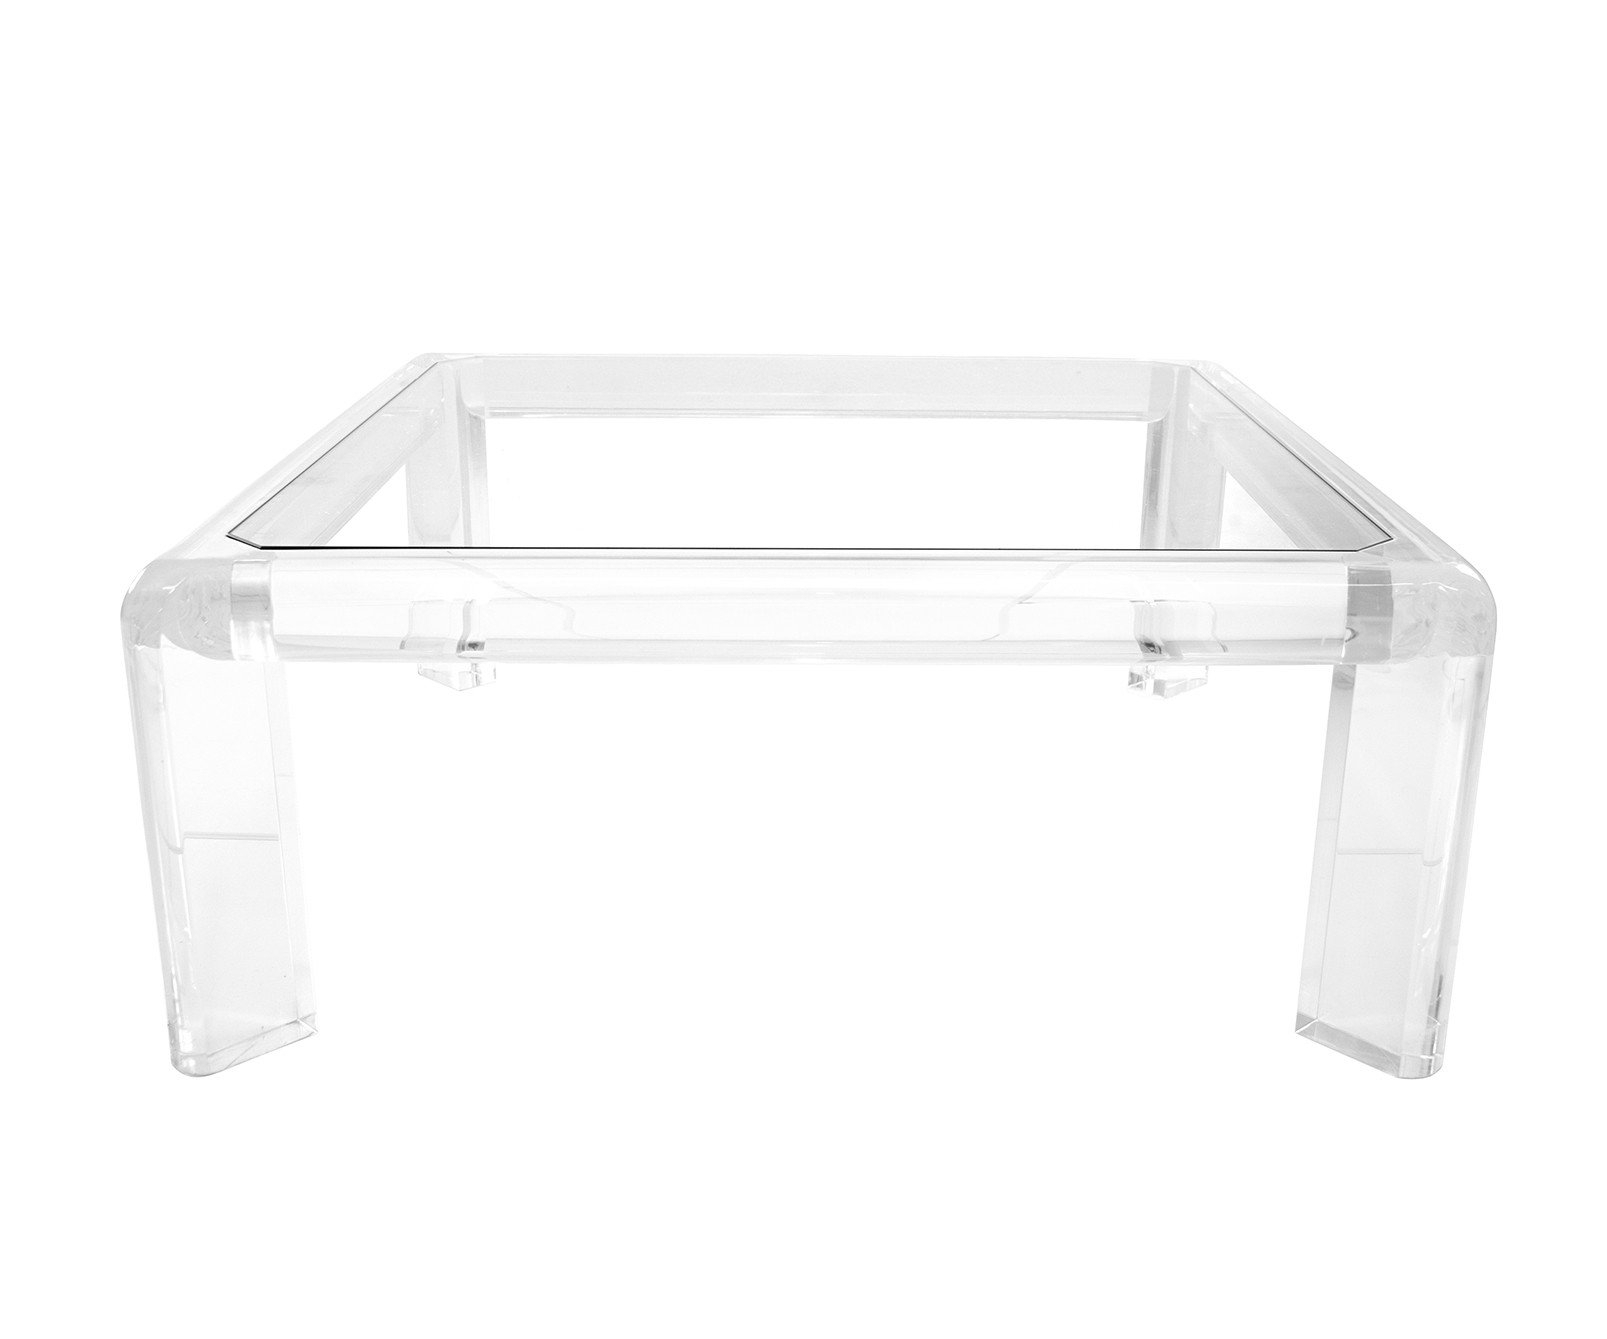 Incredible Lucite Coffee Table Regarding Acrylic Wayfair in Peekaboo Acrylic Coffee Tables (Image 19 of 30)